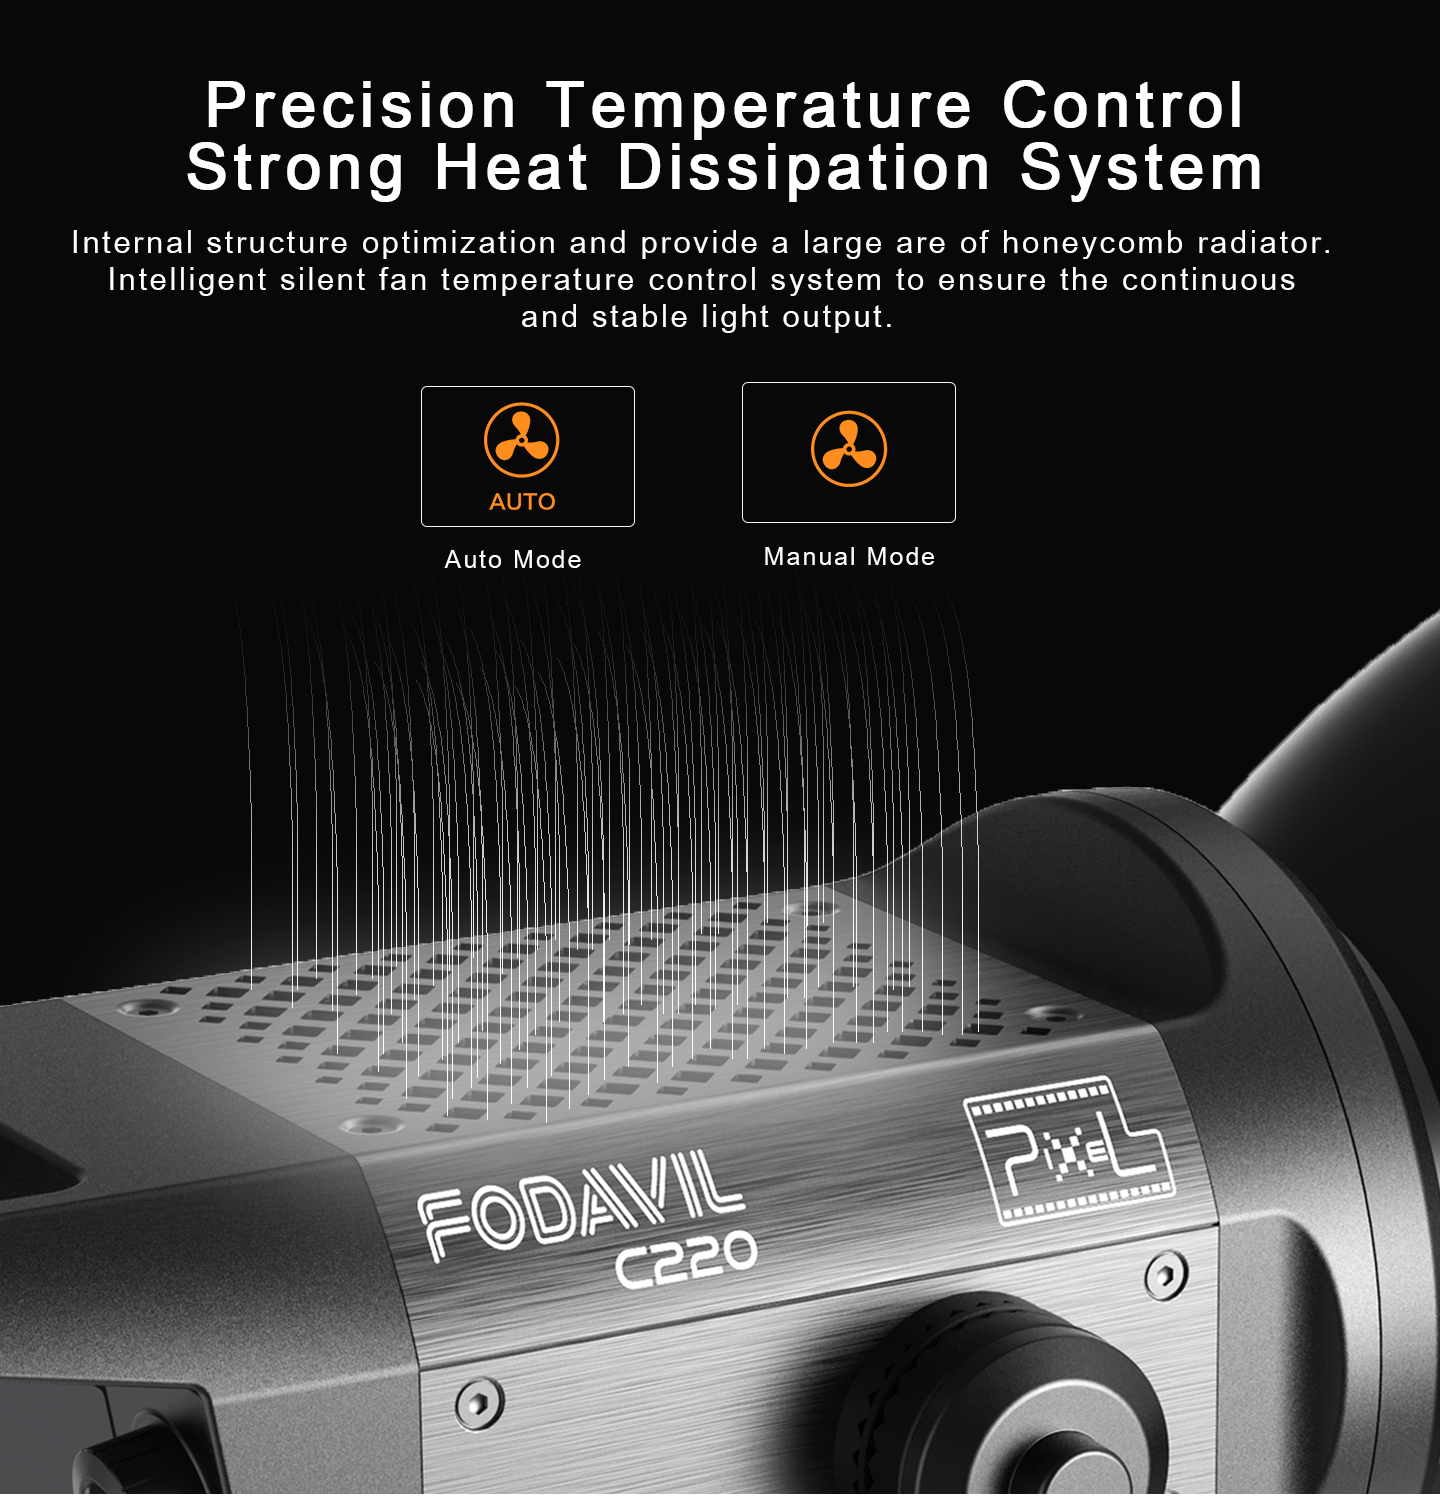 Precisiong Temperature Control trong Heat Dissipation System